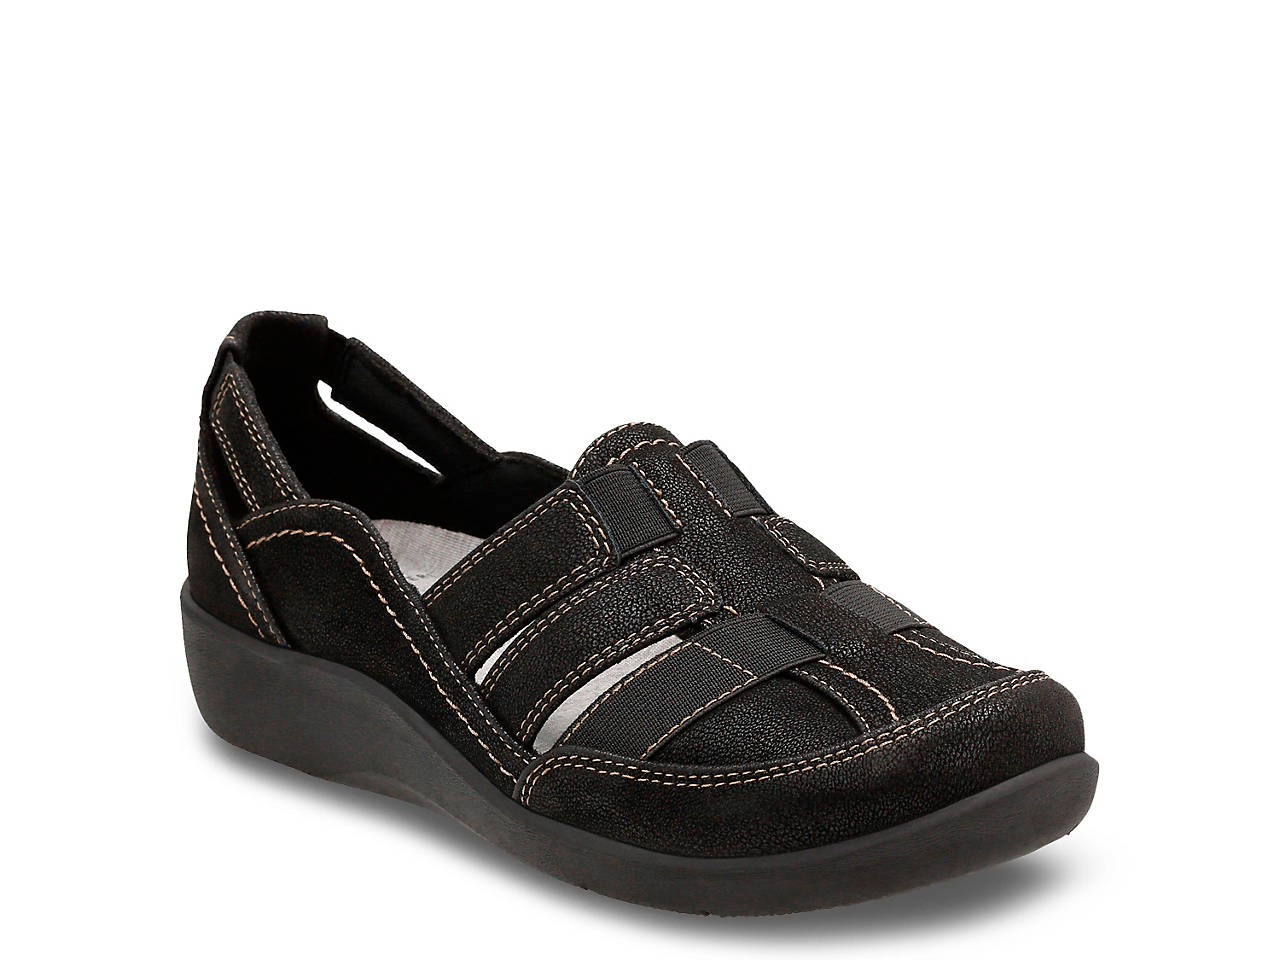 870a4f7c533 Clarks Cloudsteppers Sillian Stork Slip-On Women s Shoes